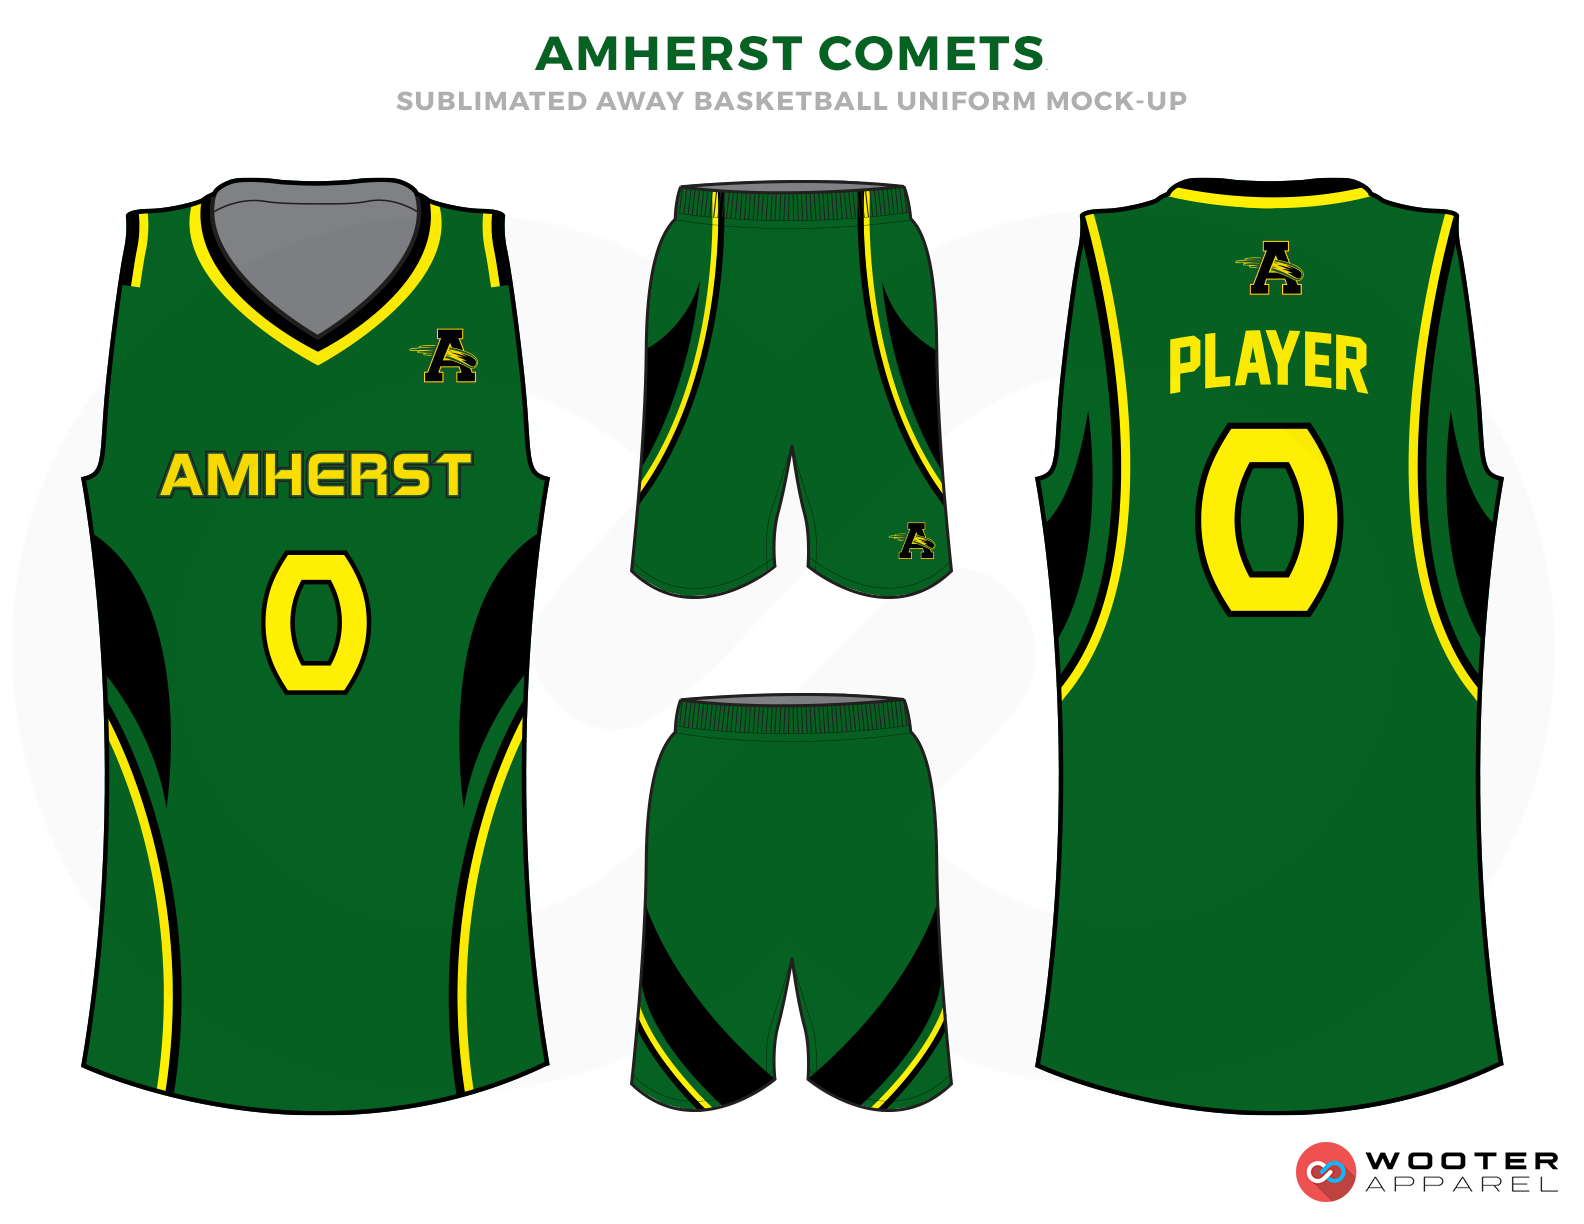 AMHERST COMETS Green Yellow and Black Basketball Uniforms, Jersey and Shorts